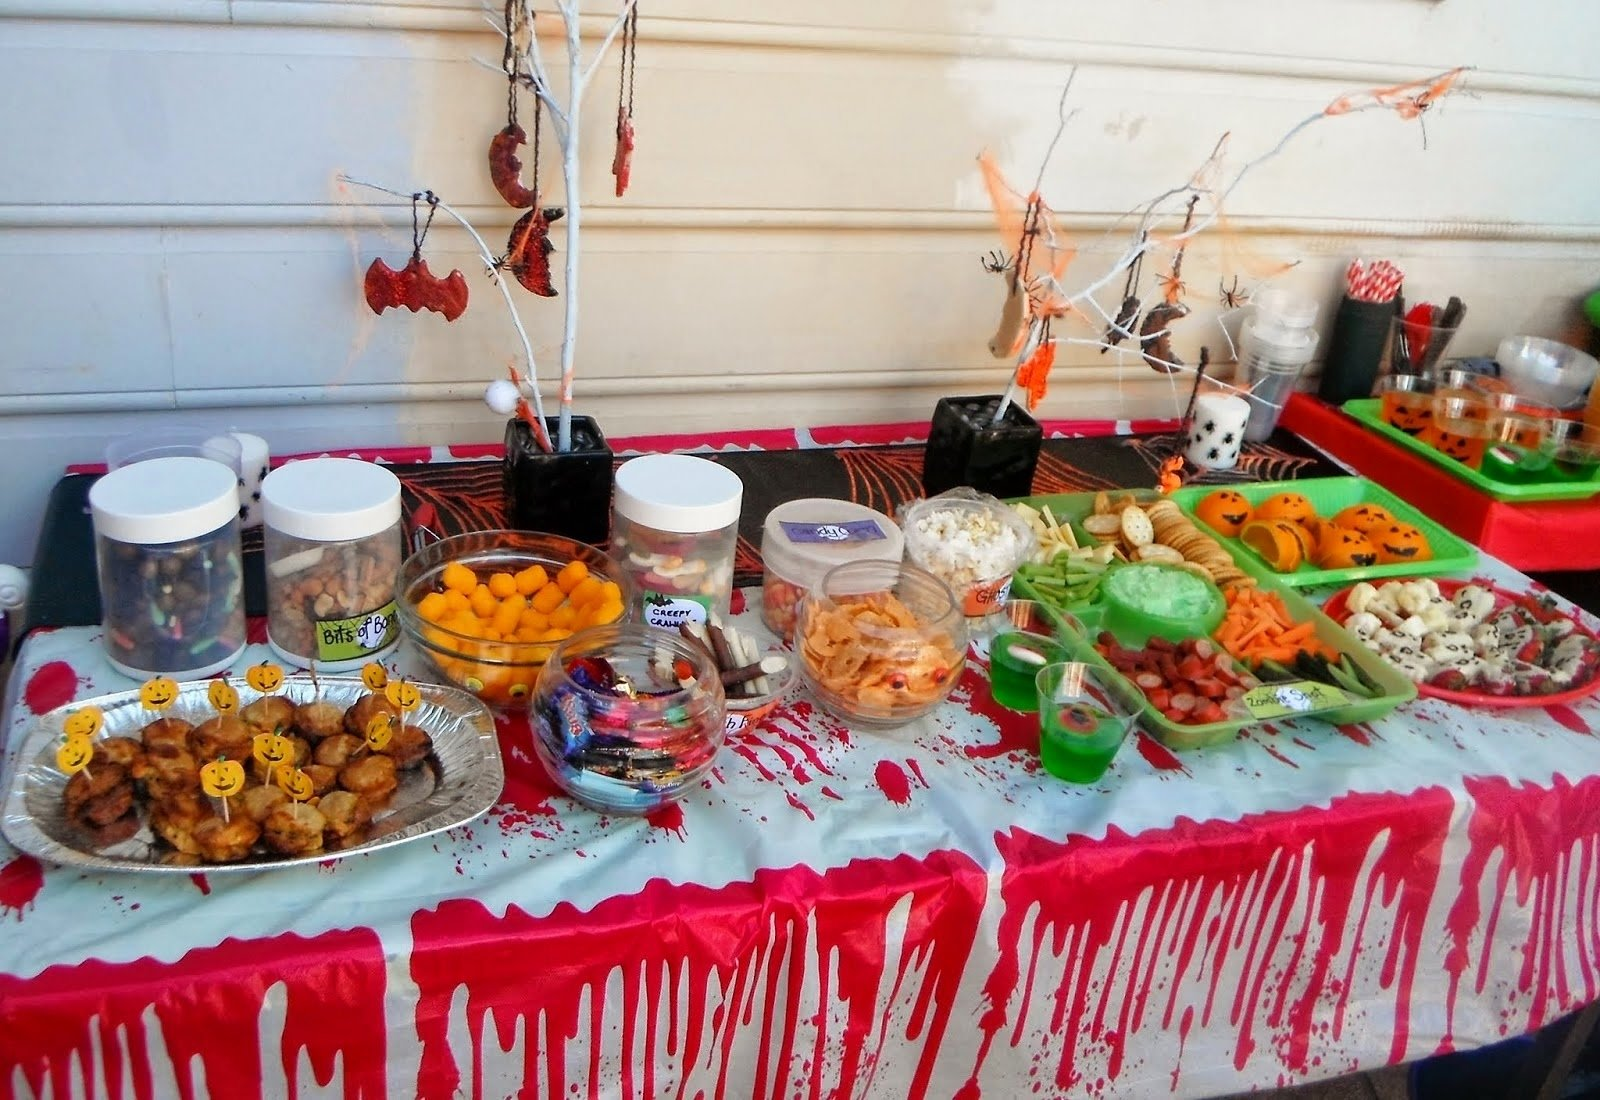 10 Great Catering Ideas For Birthday Party catering food ideas for parties food 2021